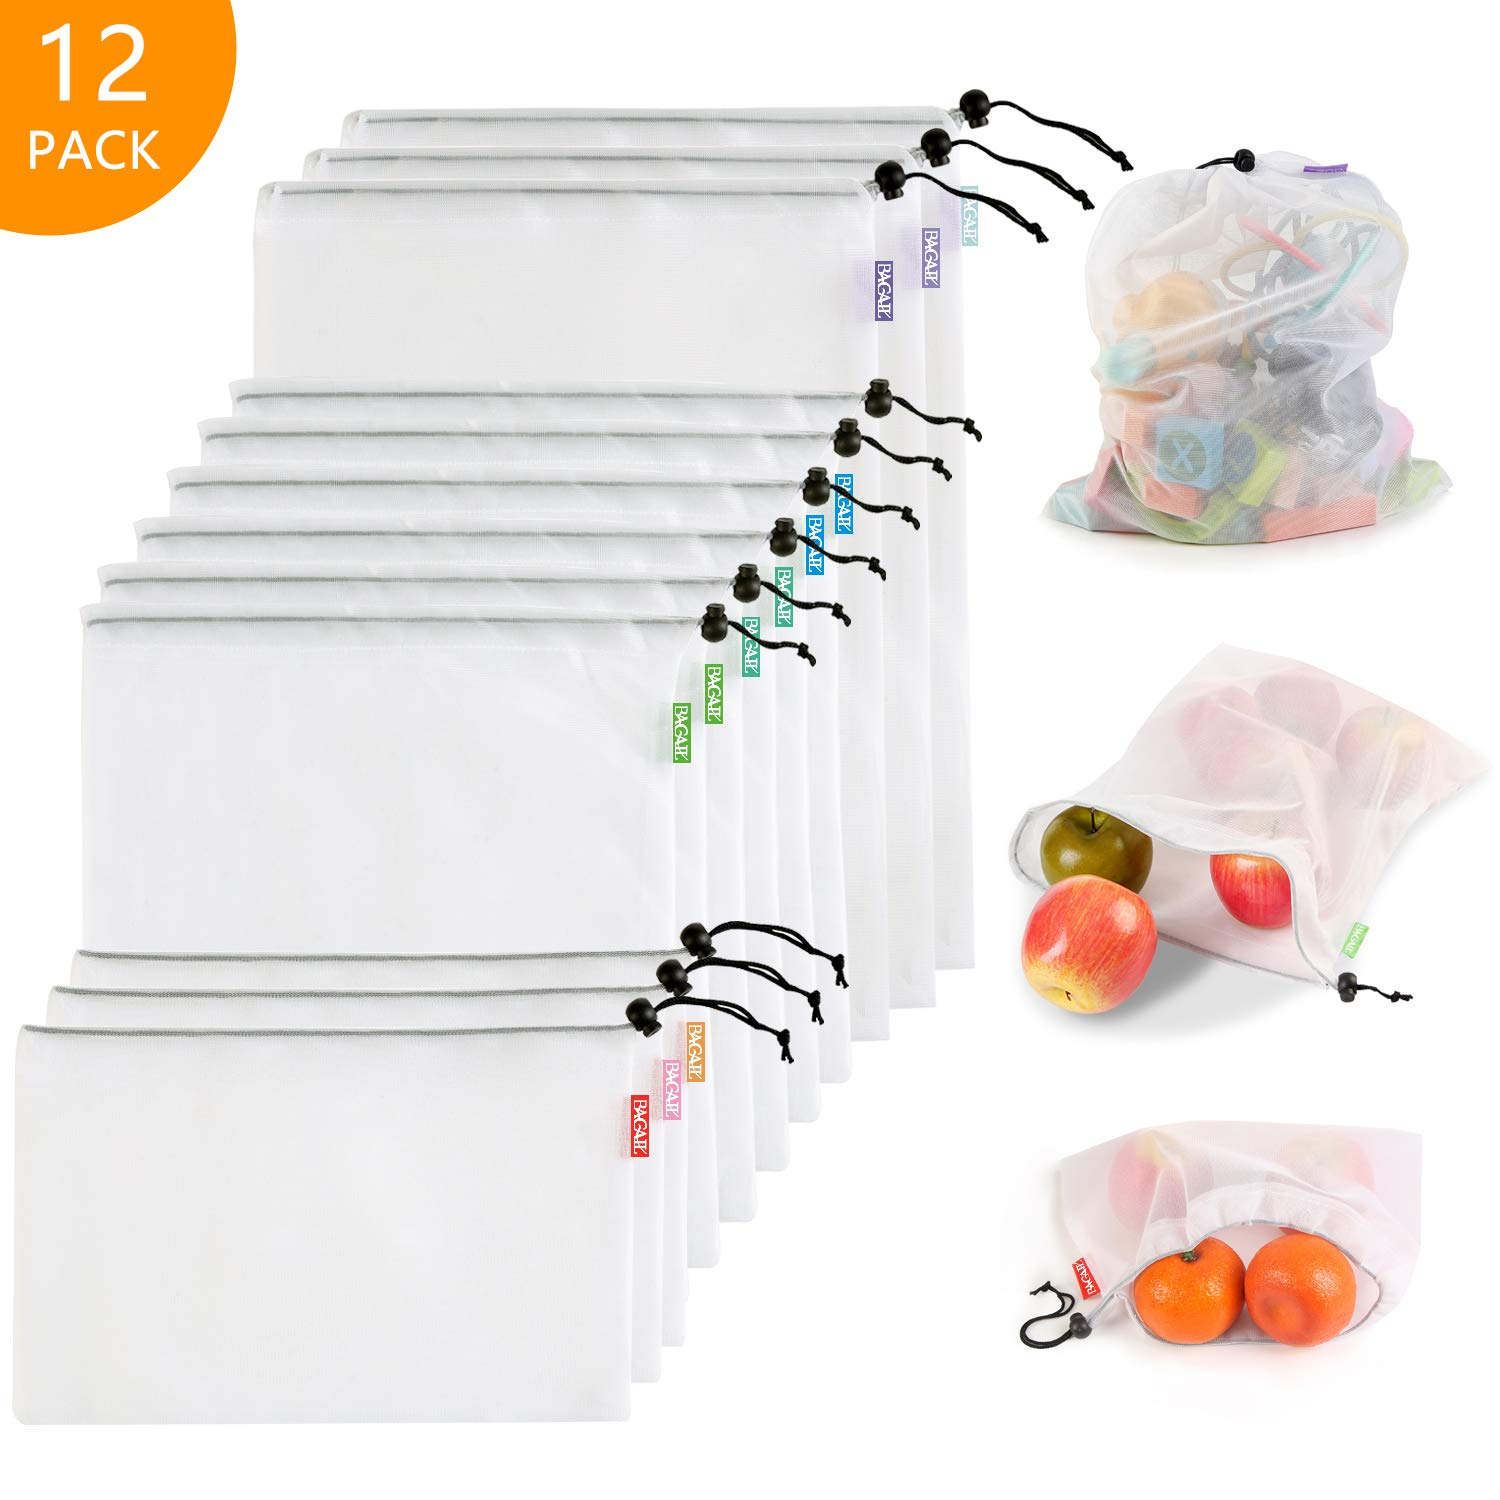 Bagail Essentials Reusable Mesh Produce Bags, ECO-Friendly, Washable, Lightweight, See-Through, Perfect for Grocery, Shopping, Storage, Fruit, Vegetable and Toys(Mesh Polyester,12PCS (3L+6M+3S))